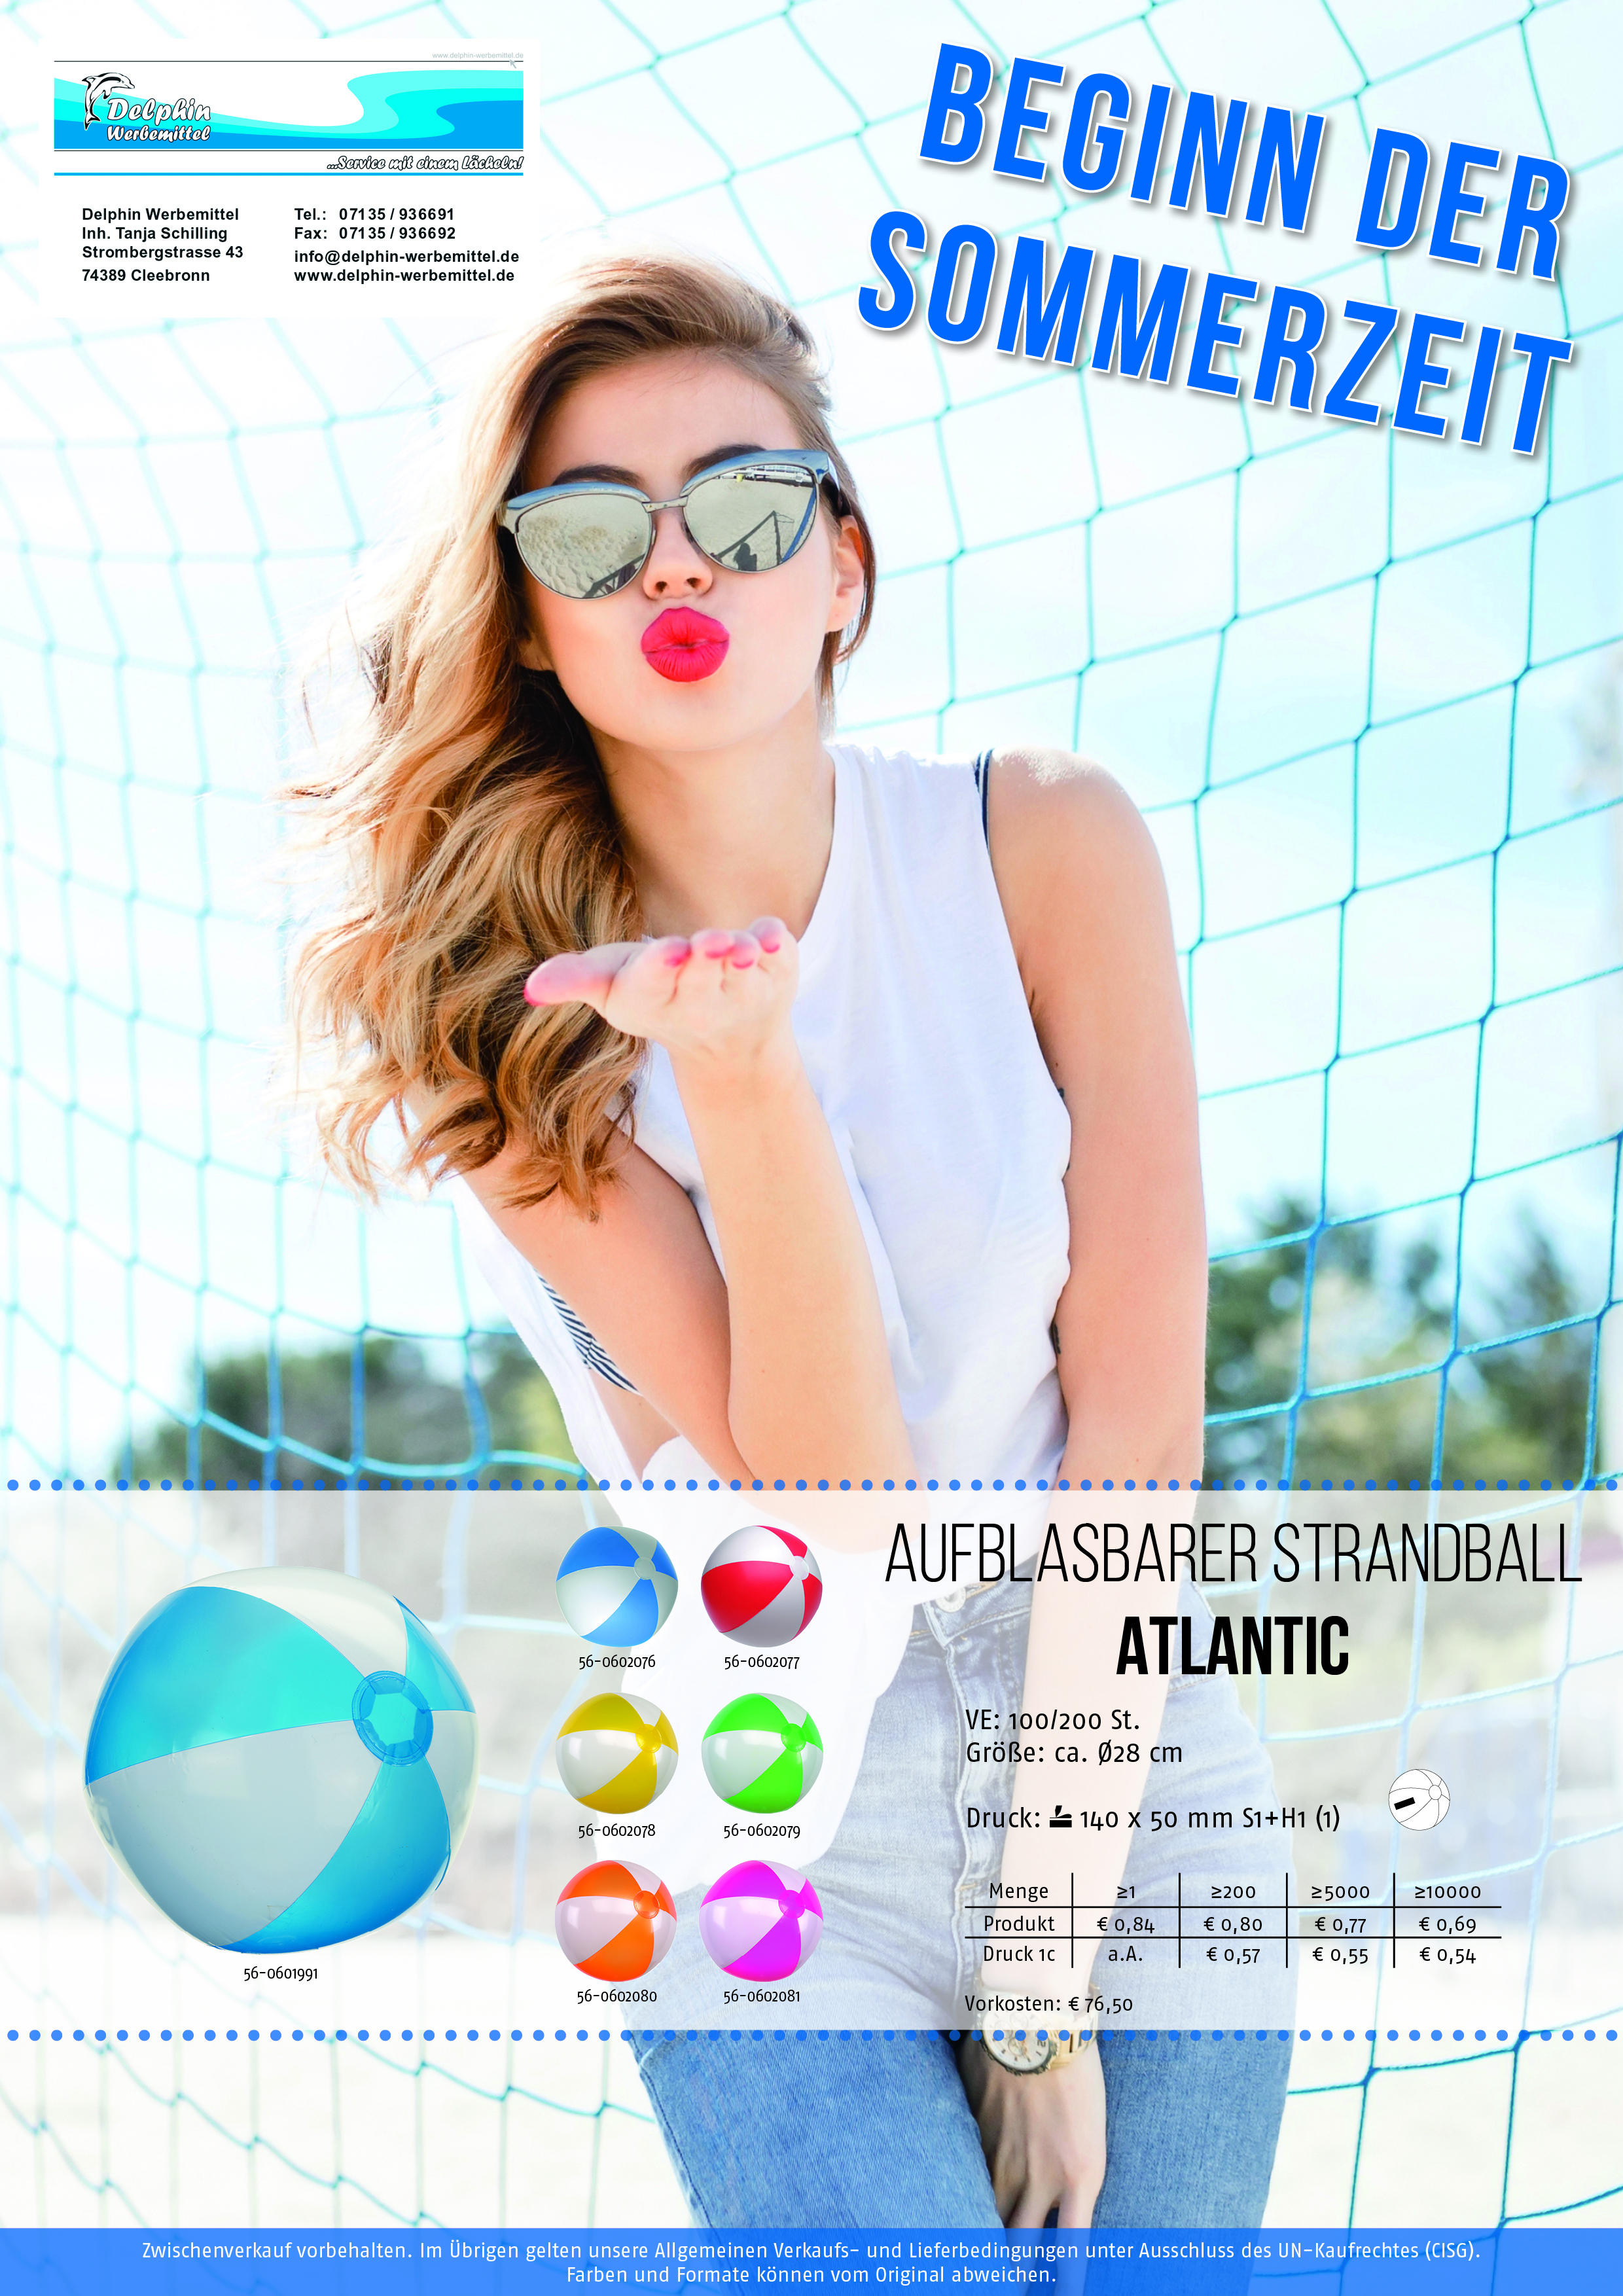 Strandball Atlantic